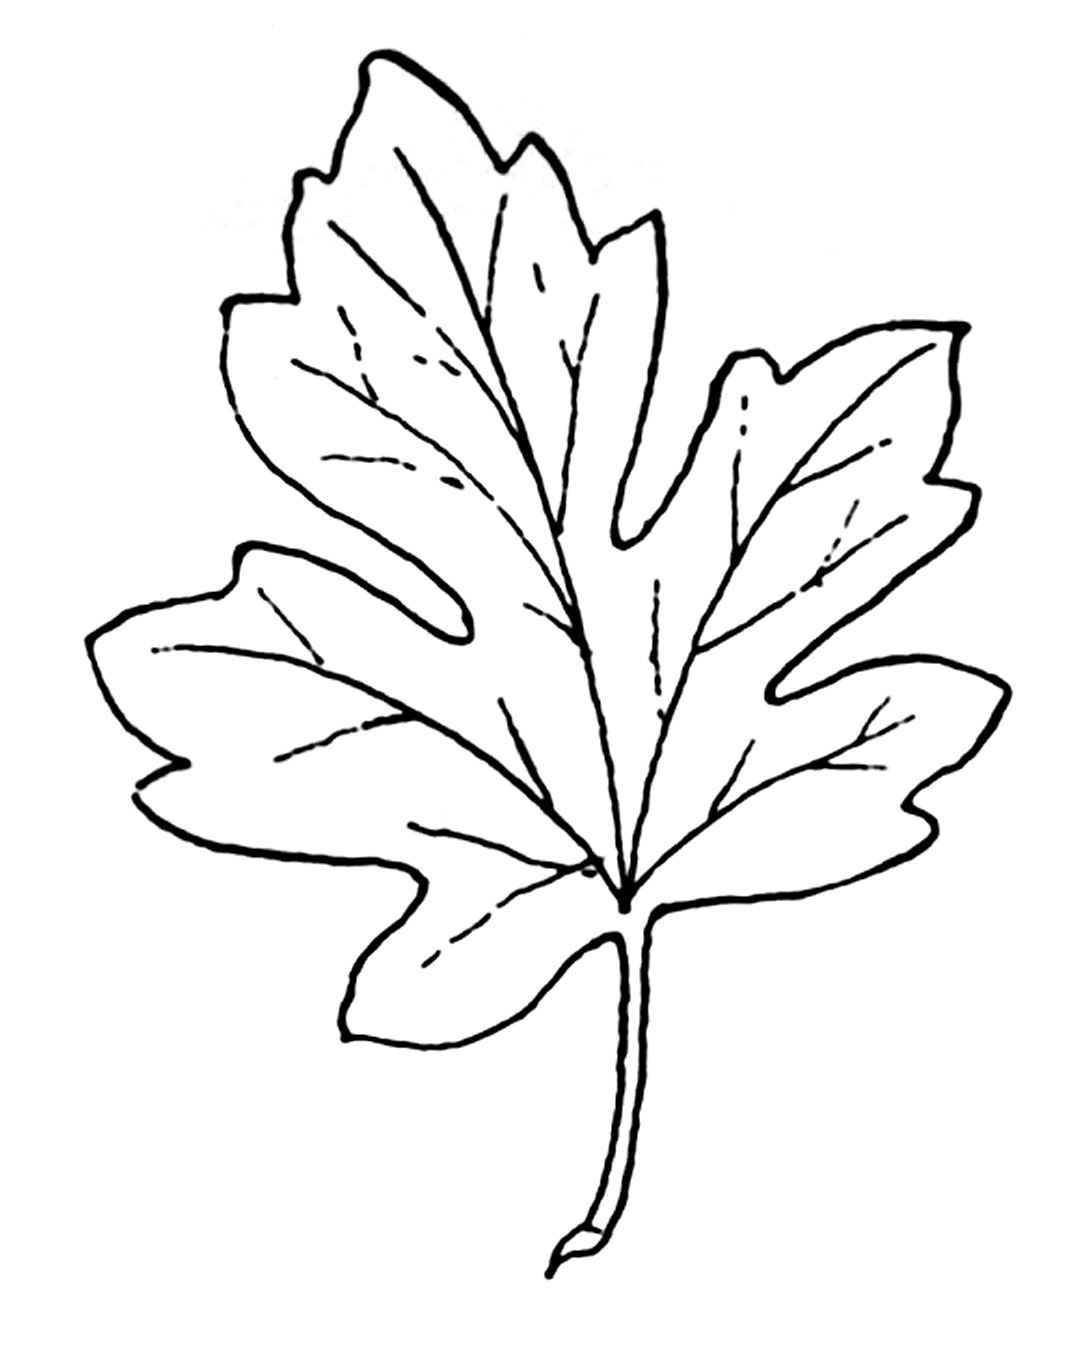 870 Fall Leaf free clipart.